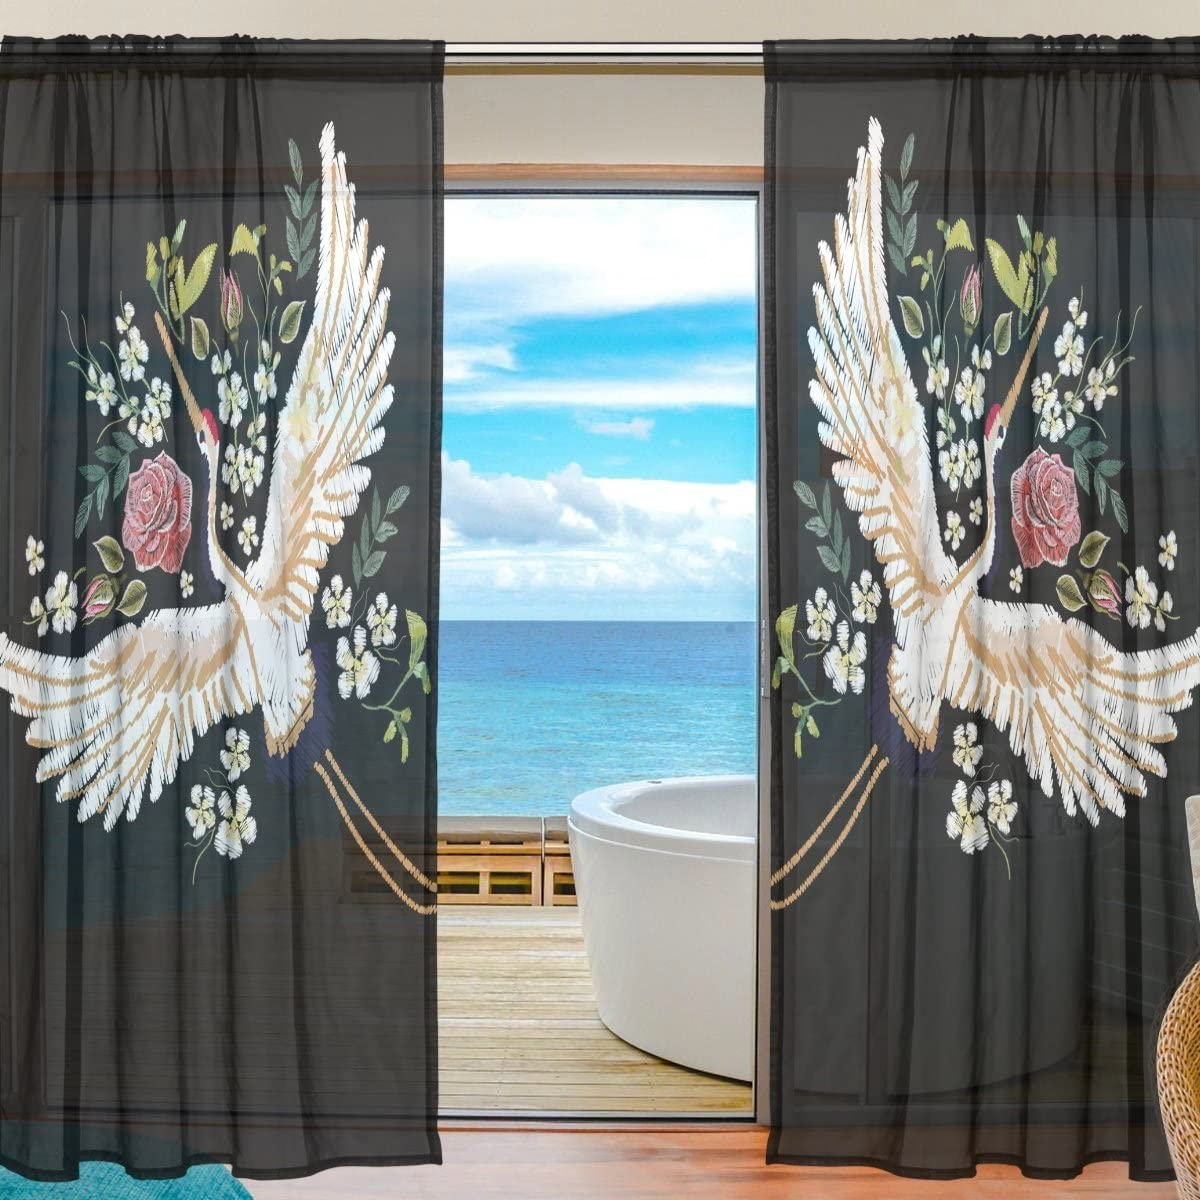 ALAZA Sheer Curtain Japanese Crane Flower Voile Tulle Window Curtain for Home Kitchen Bedroom Living Room 55×78 inches 2 panels